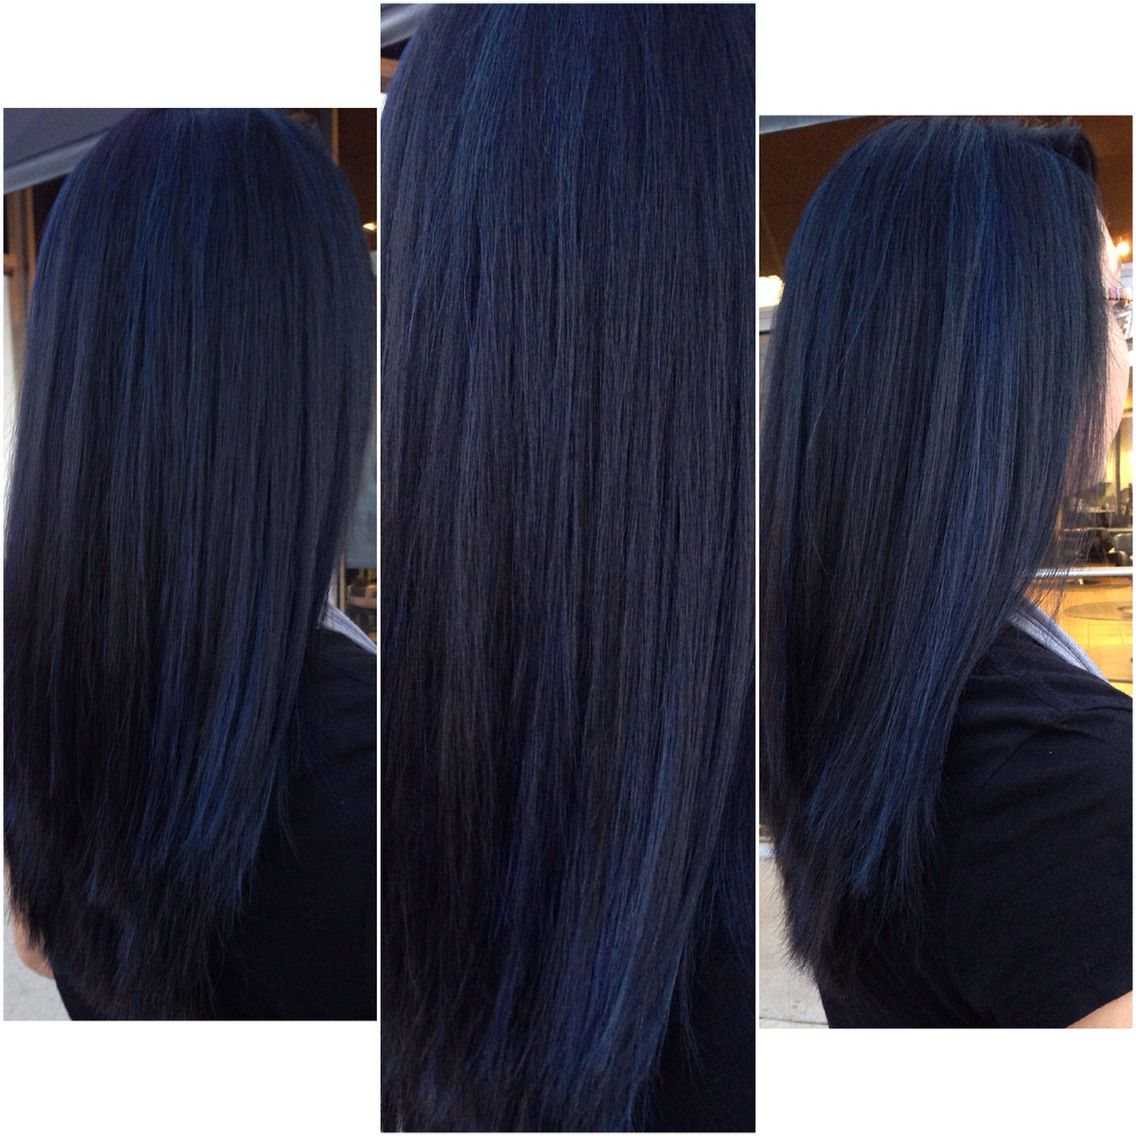 Sapphire Blue Black Hair Personal Work Pinterest